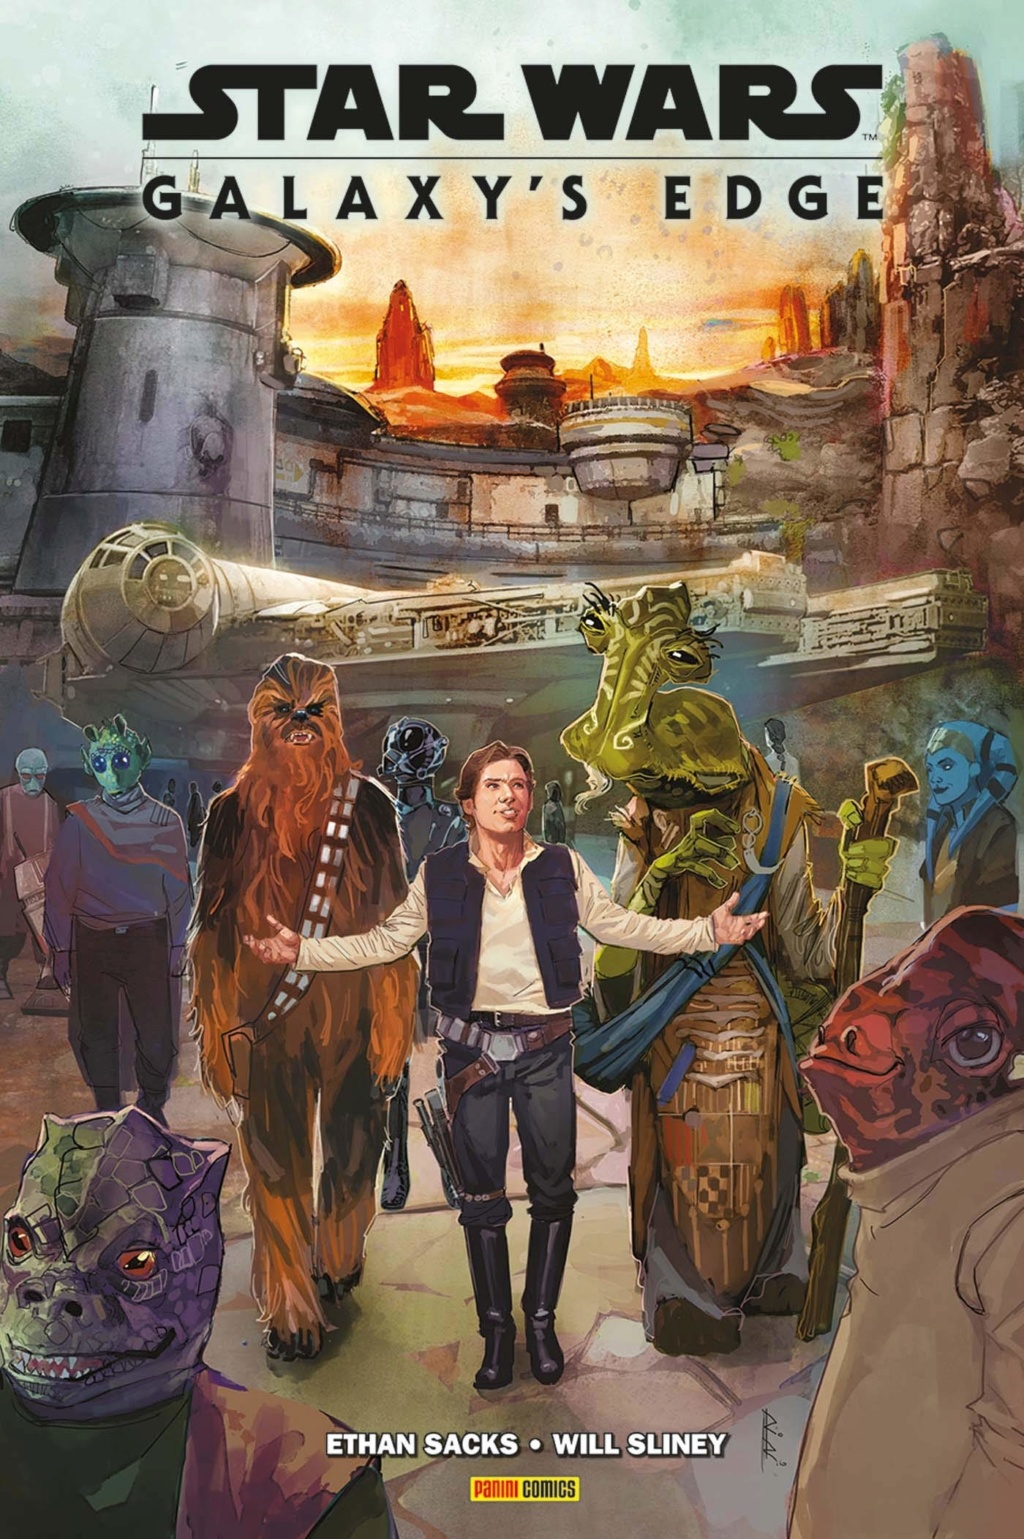 LE COIN STAR WARS (Avec spoilers ) - Page 43 81h3hh10